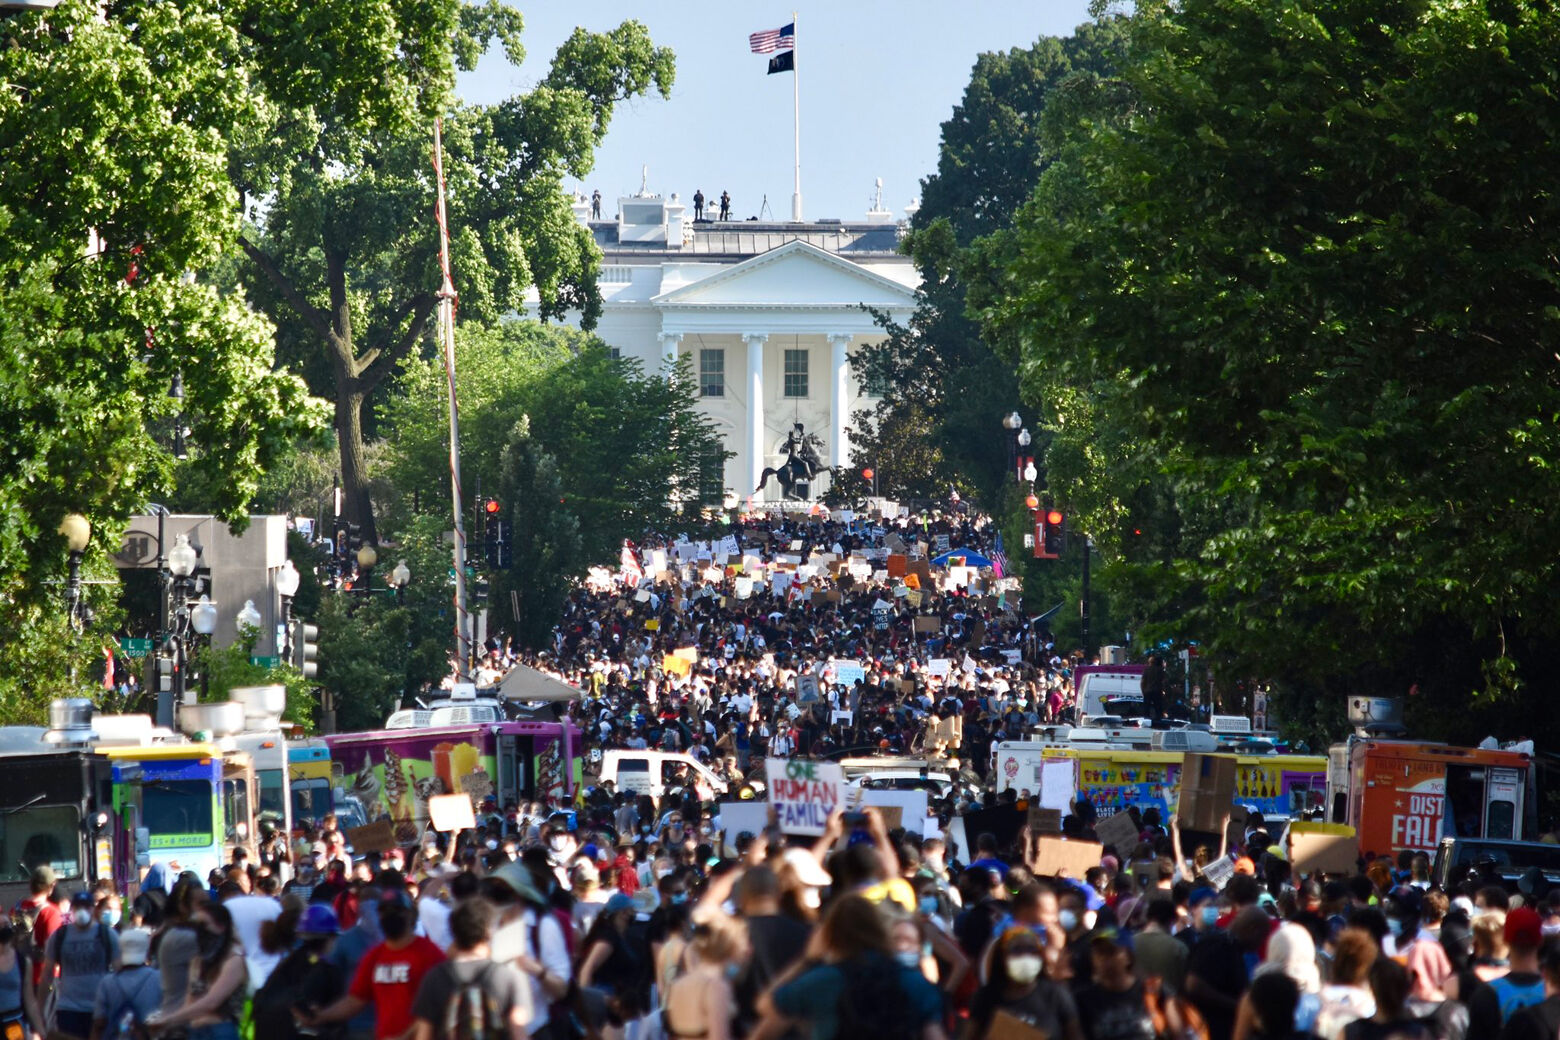 Protesters in front of the White House.